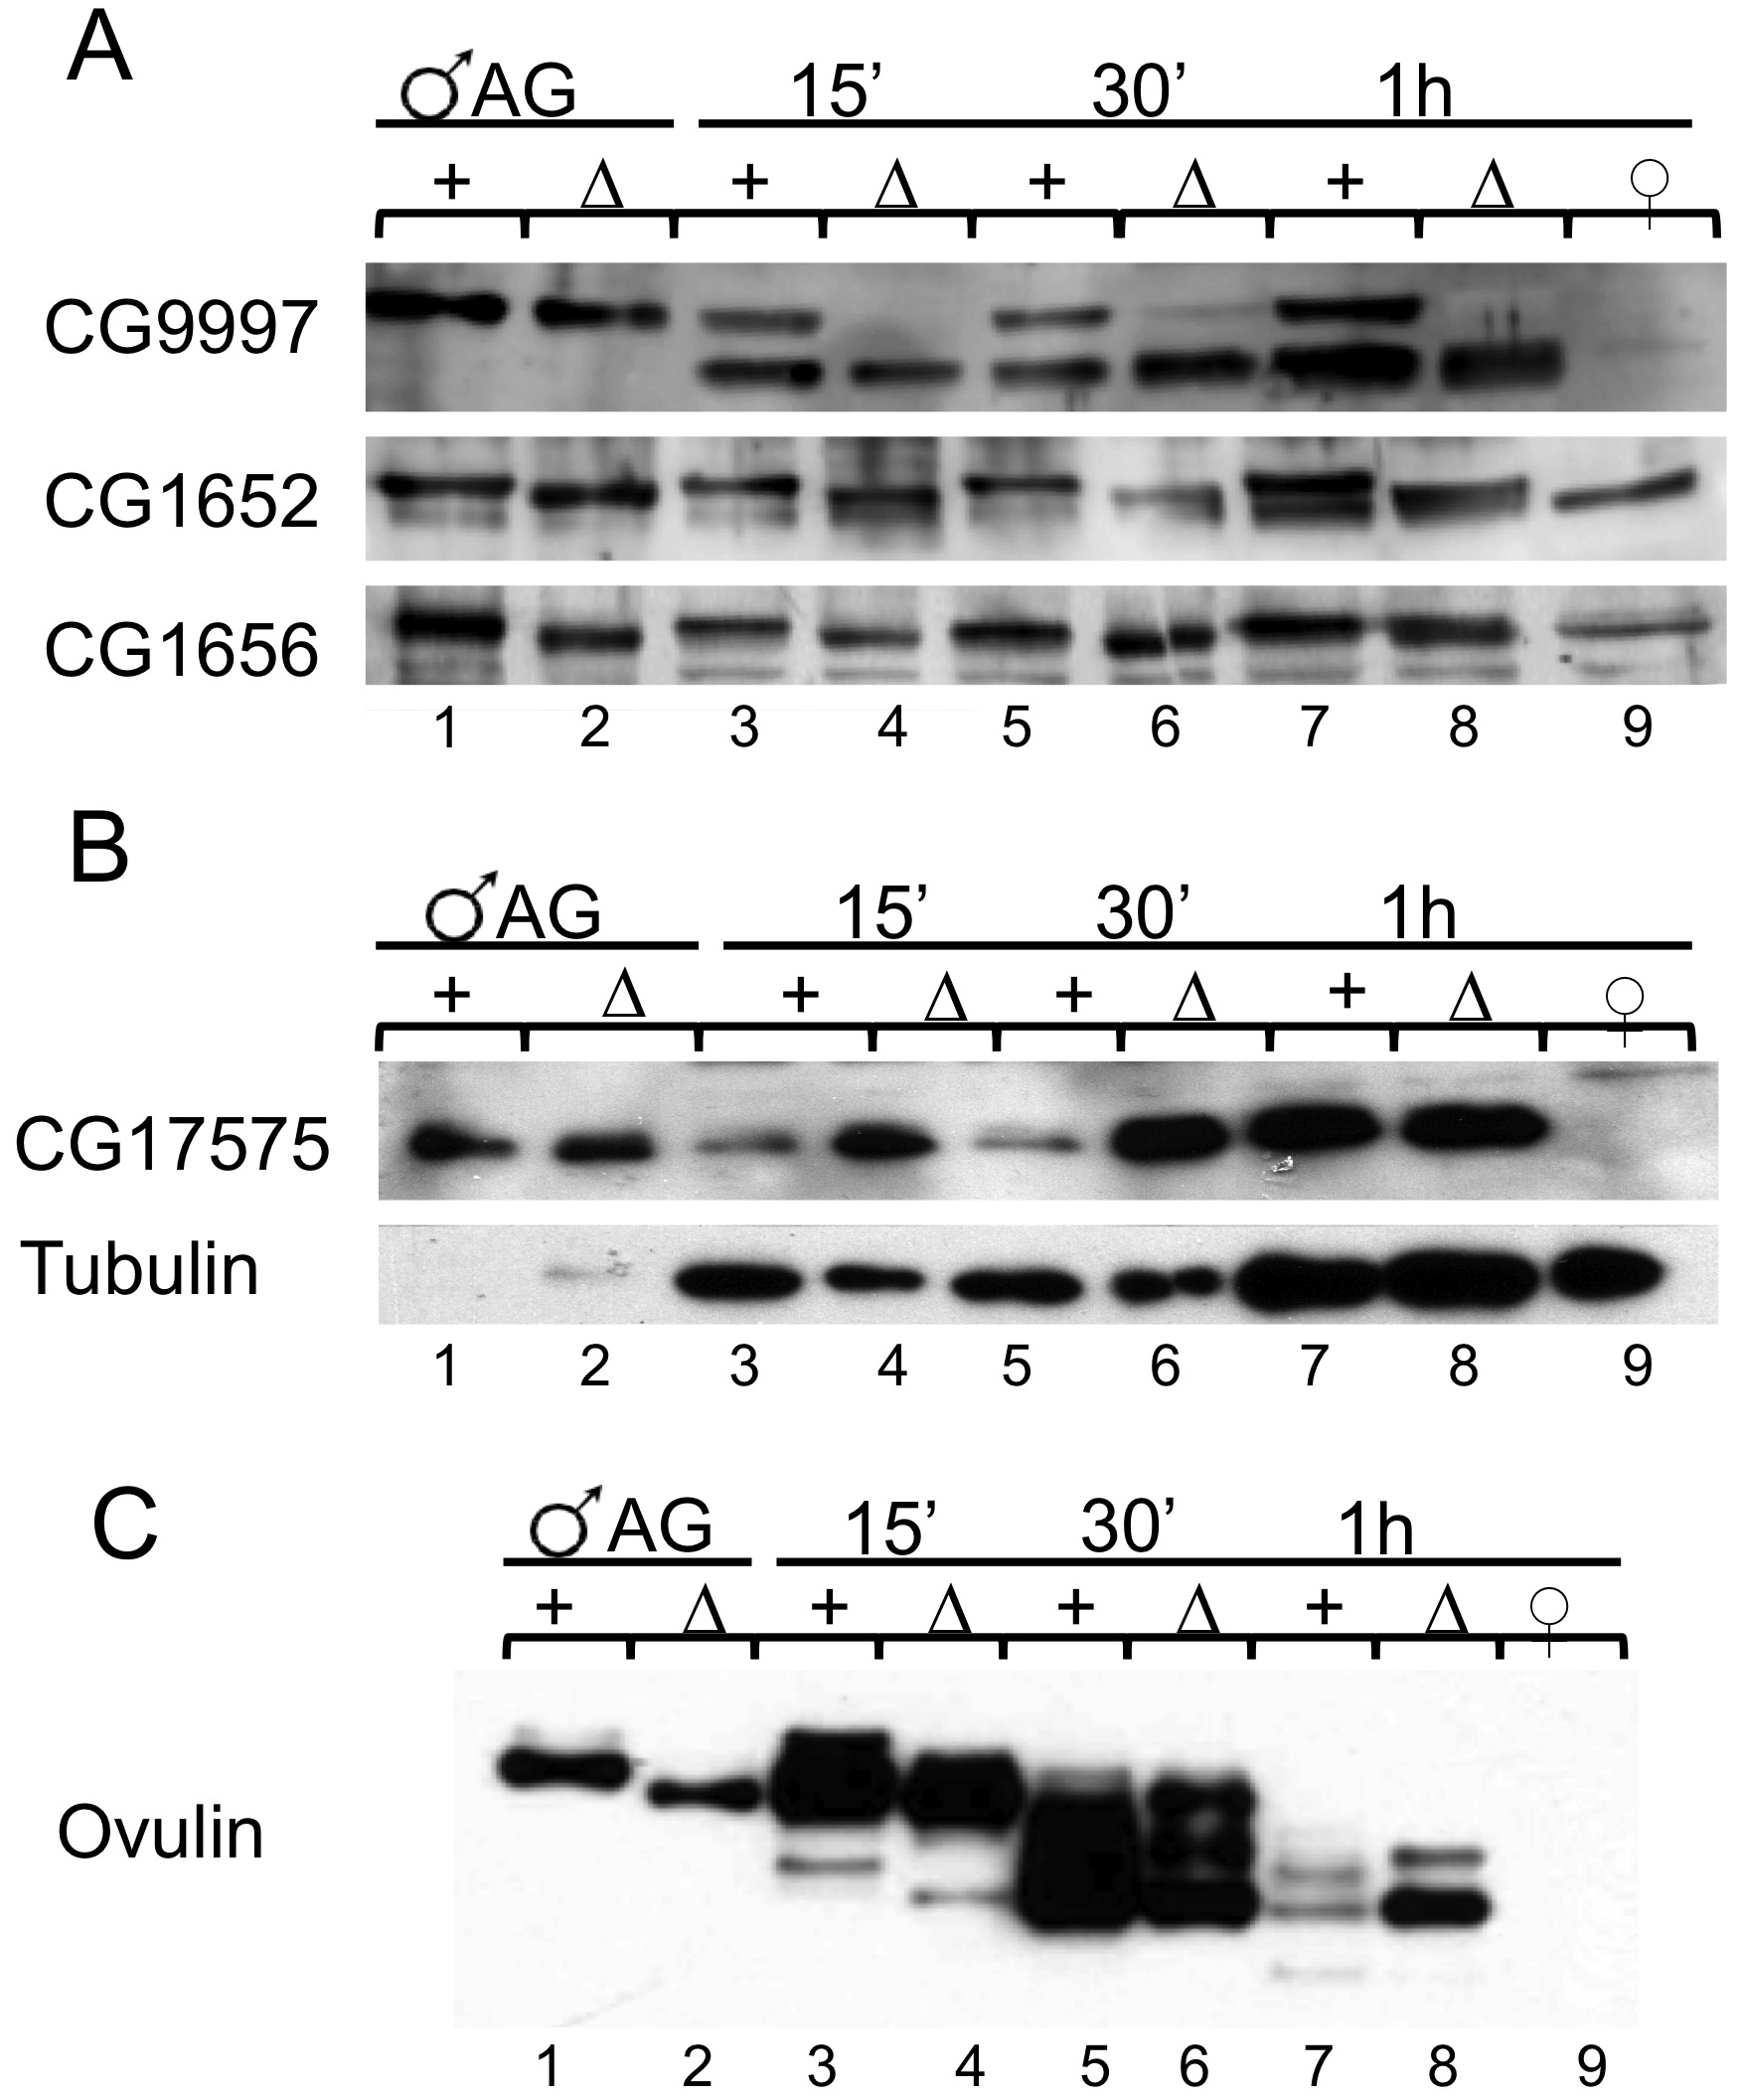 Post translational modification, stability, and abundance of seminal fluid proteins in mates of <i>iab-6<sup>cocu</sup></i> or control males.